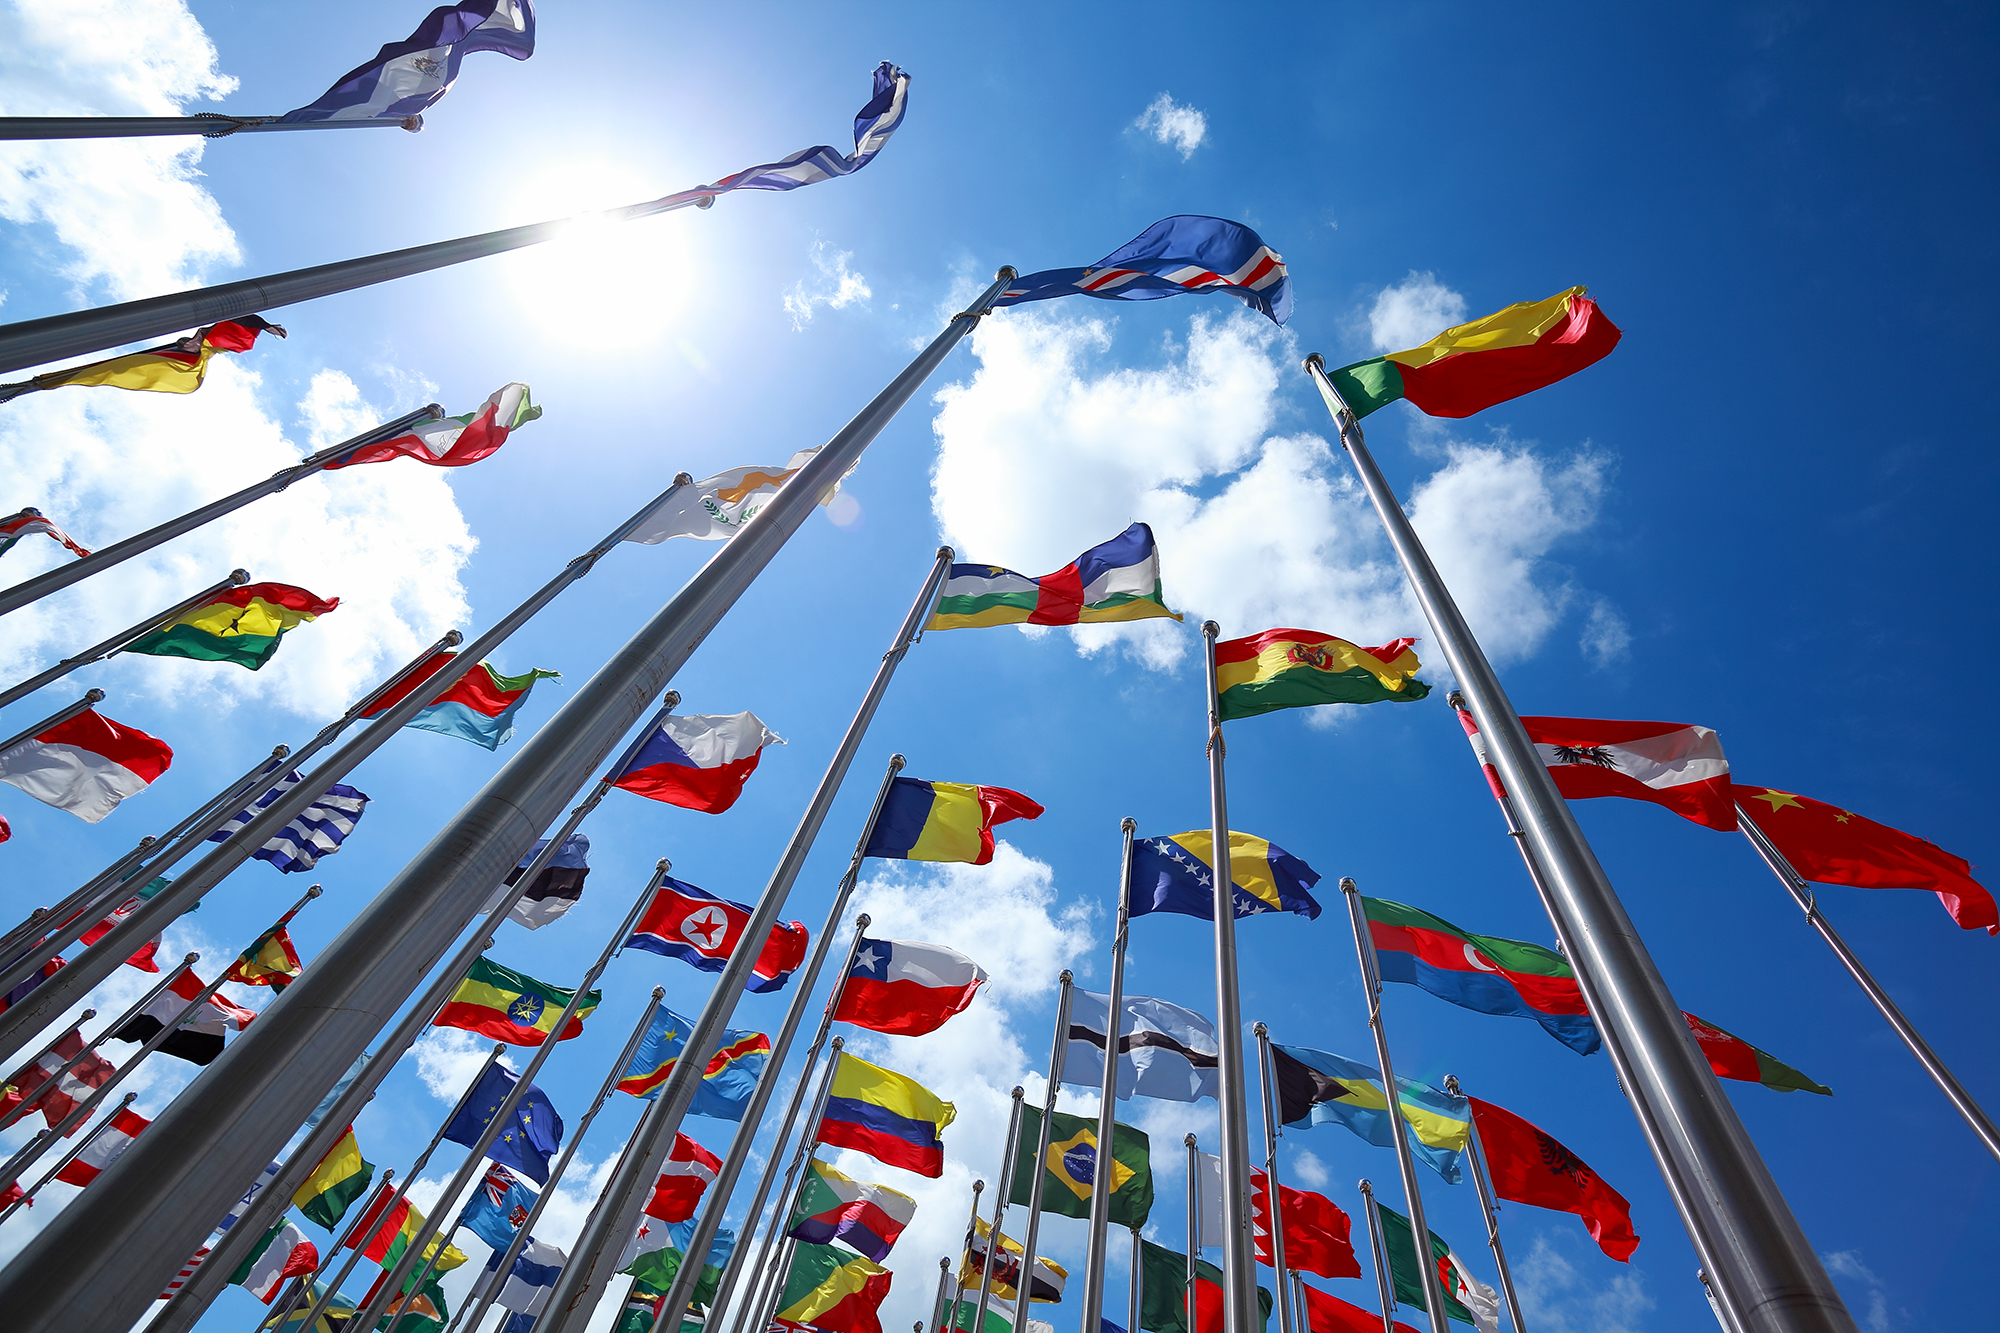 MiTek's Global Reach and Scale - A large number of flagpoles with flags from different nations